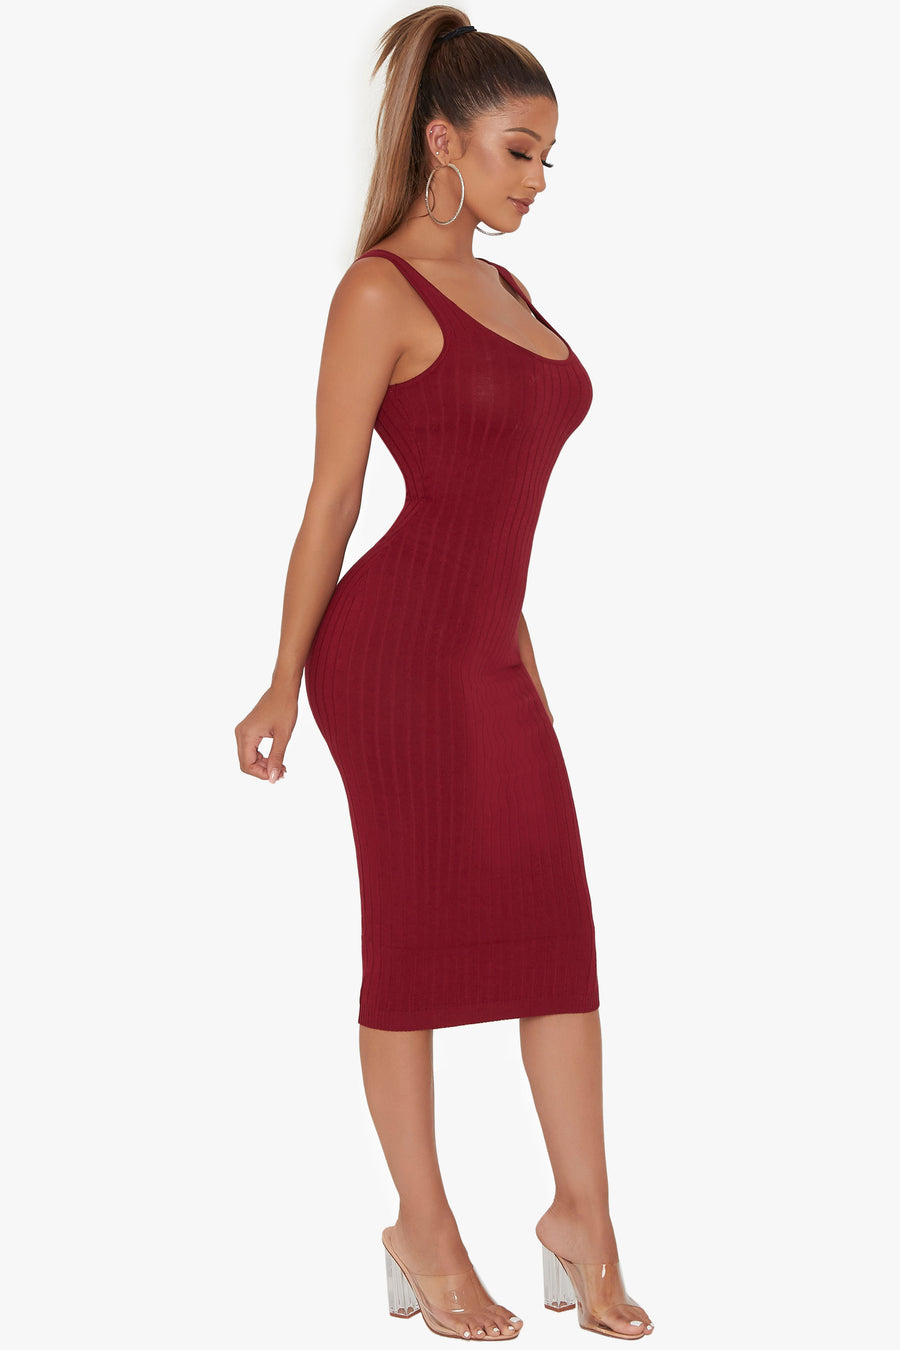 Walk This Way Ribbed Dress